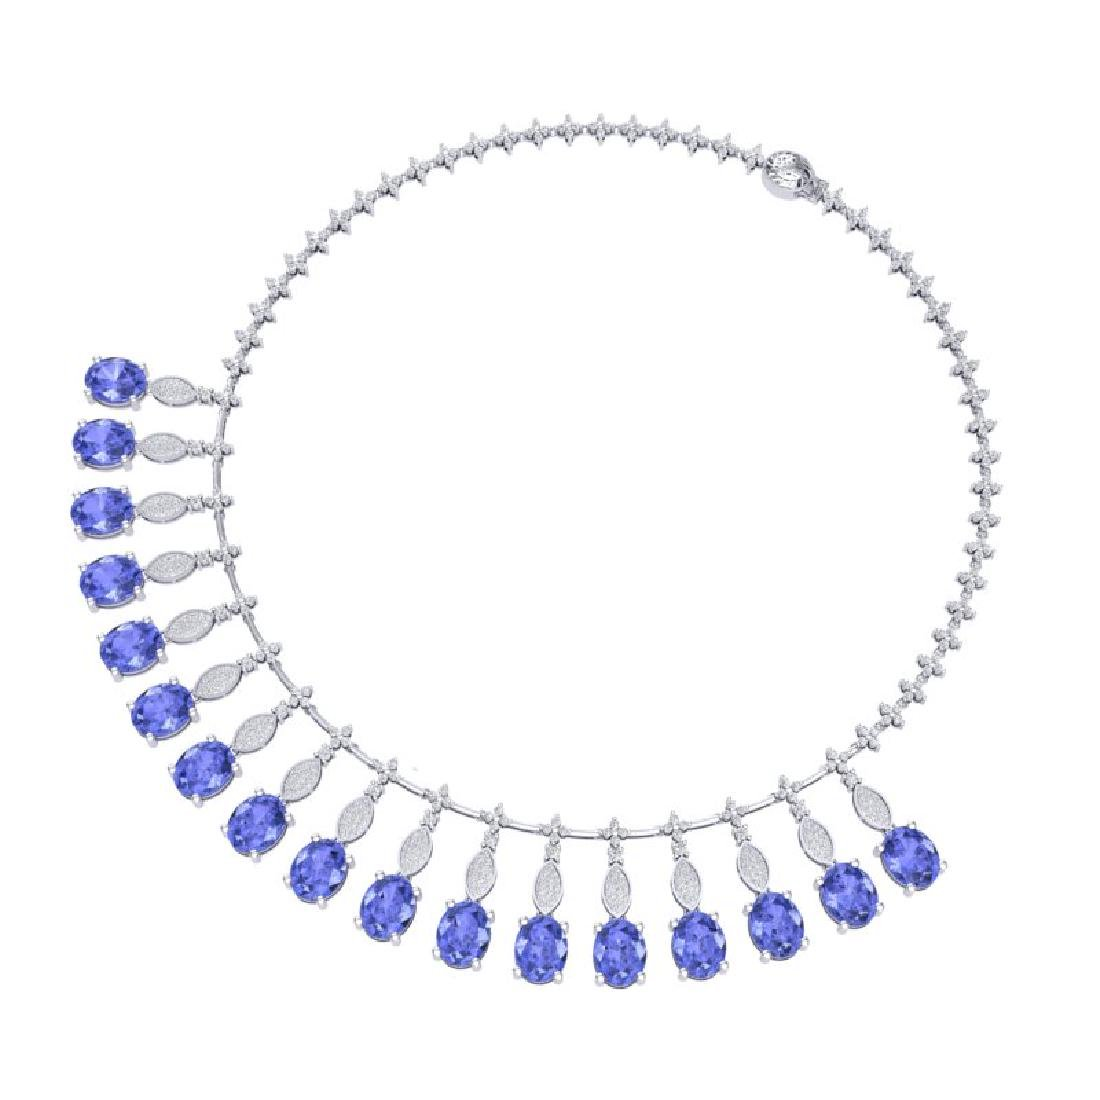 57.15 CTW Royalty Tanzanite & VS Diamond Necklace 18K - 2